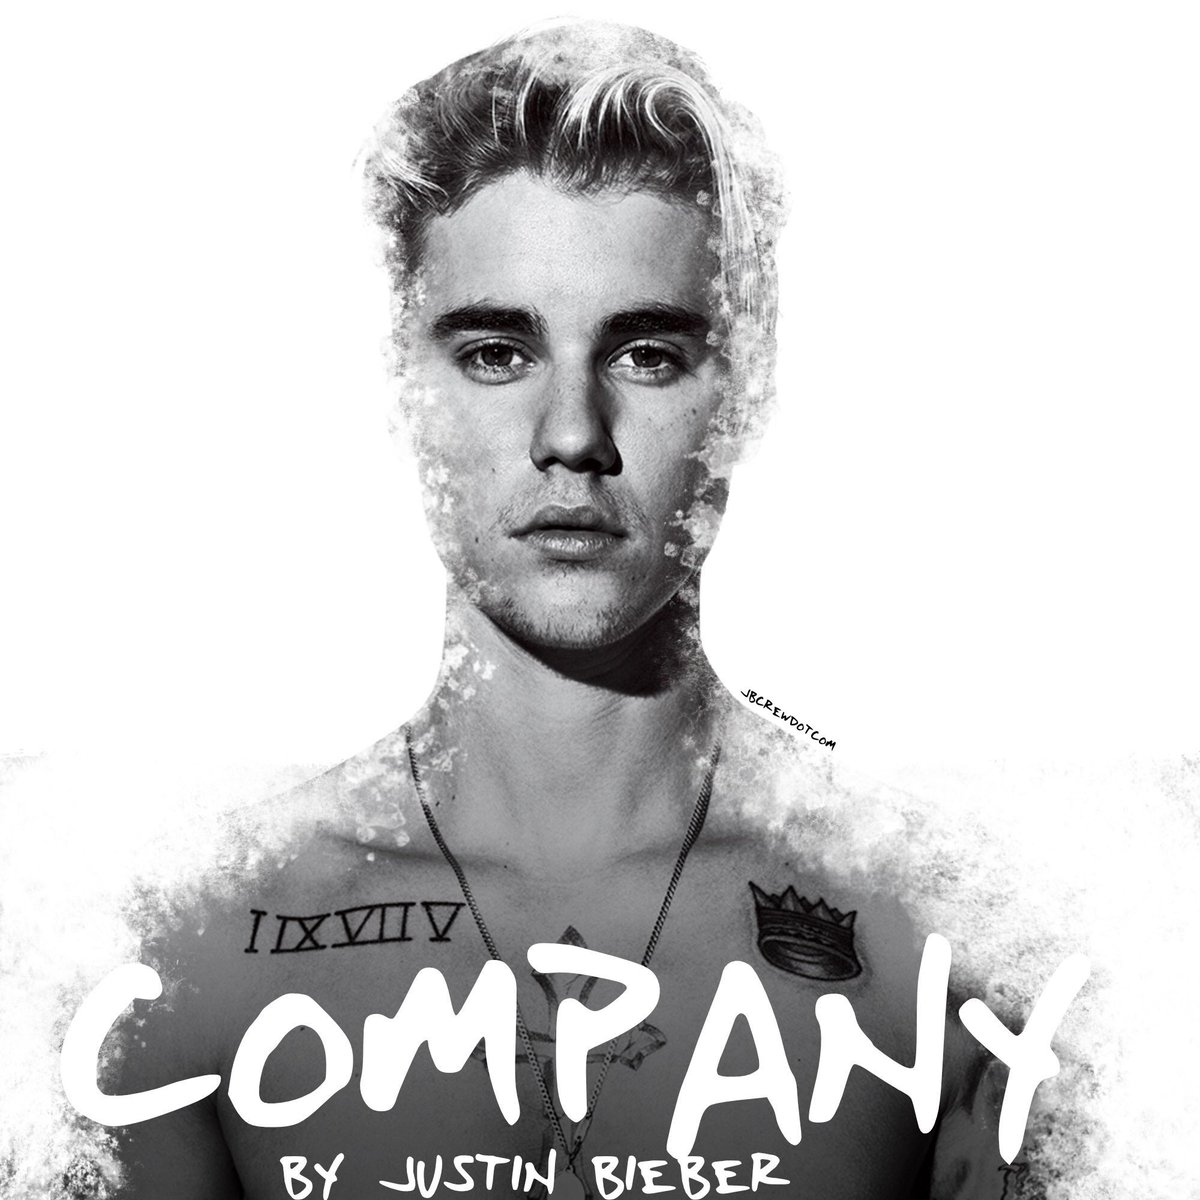 """Atlanta songwriter talks about co-writing the new @justinbieber song, """"Company."""" https://t.co/AjncBnmo8E https://t.co/gDuEw0Zrif"""